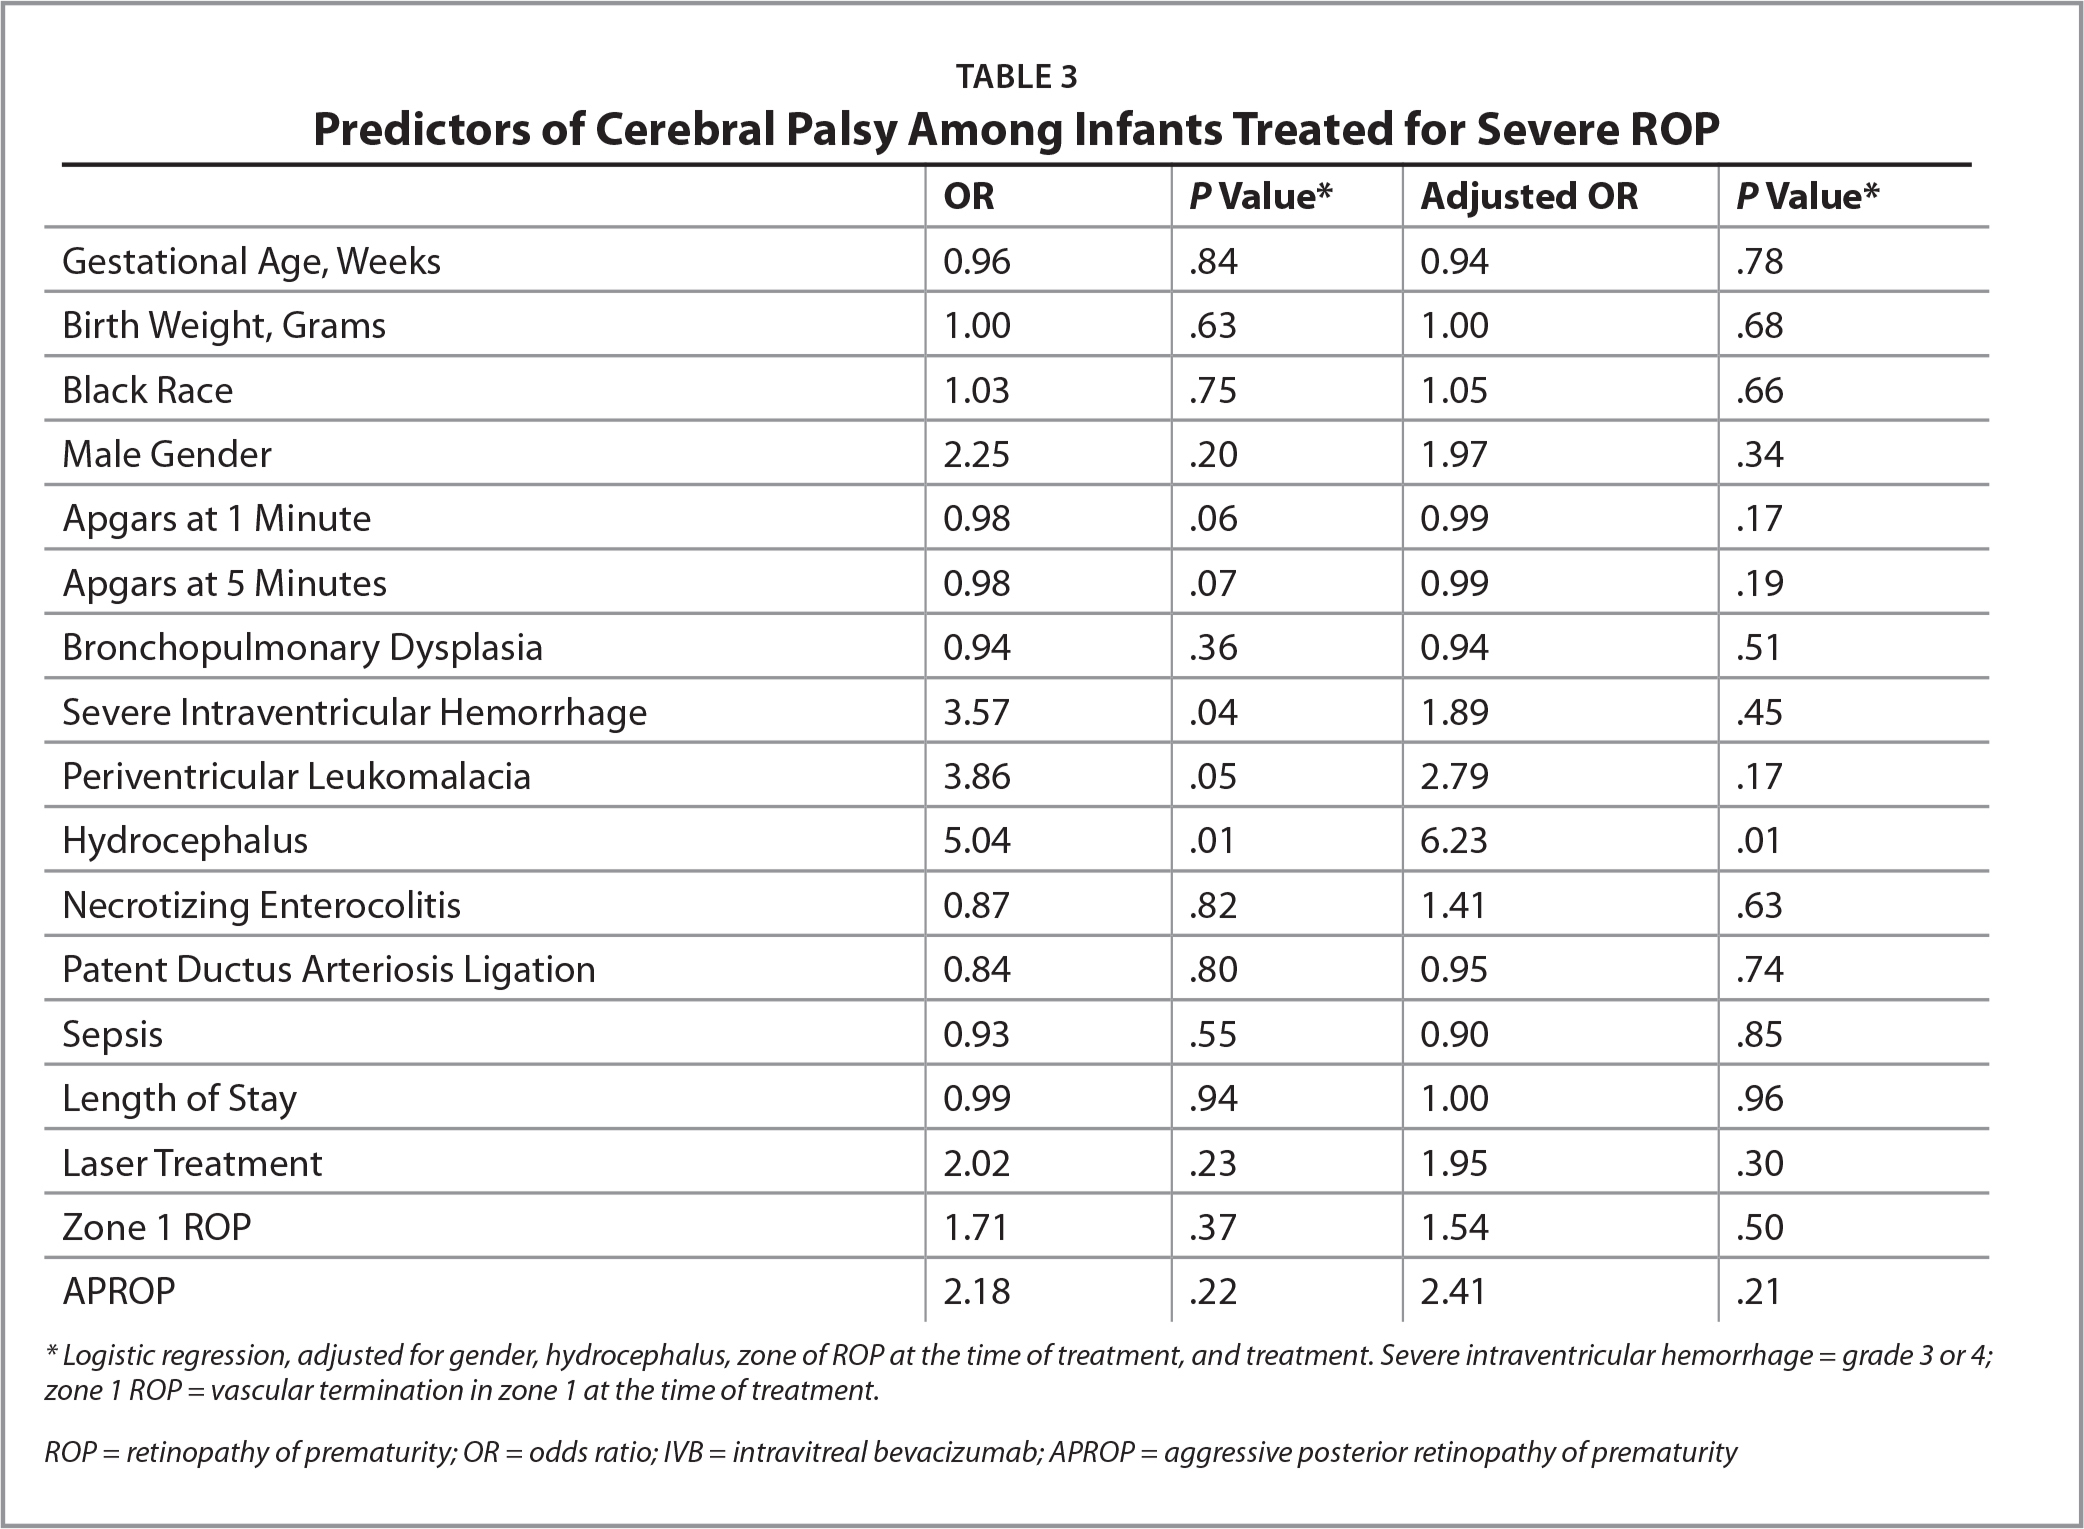 Predictors of Cerebral Palsy Among Infants Treated for Severe ROP